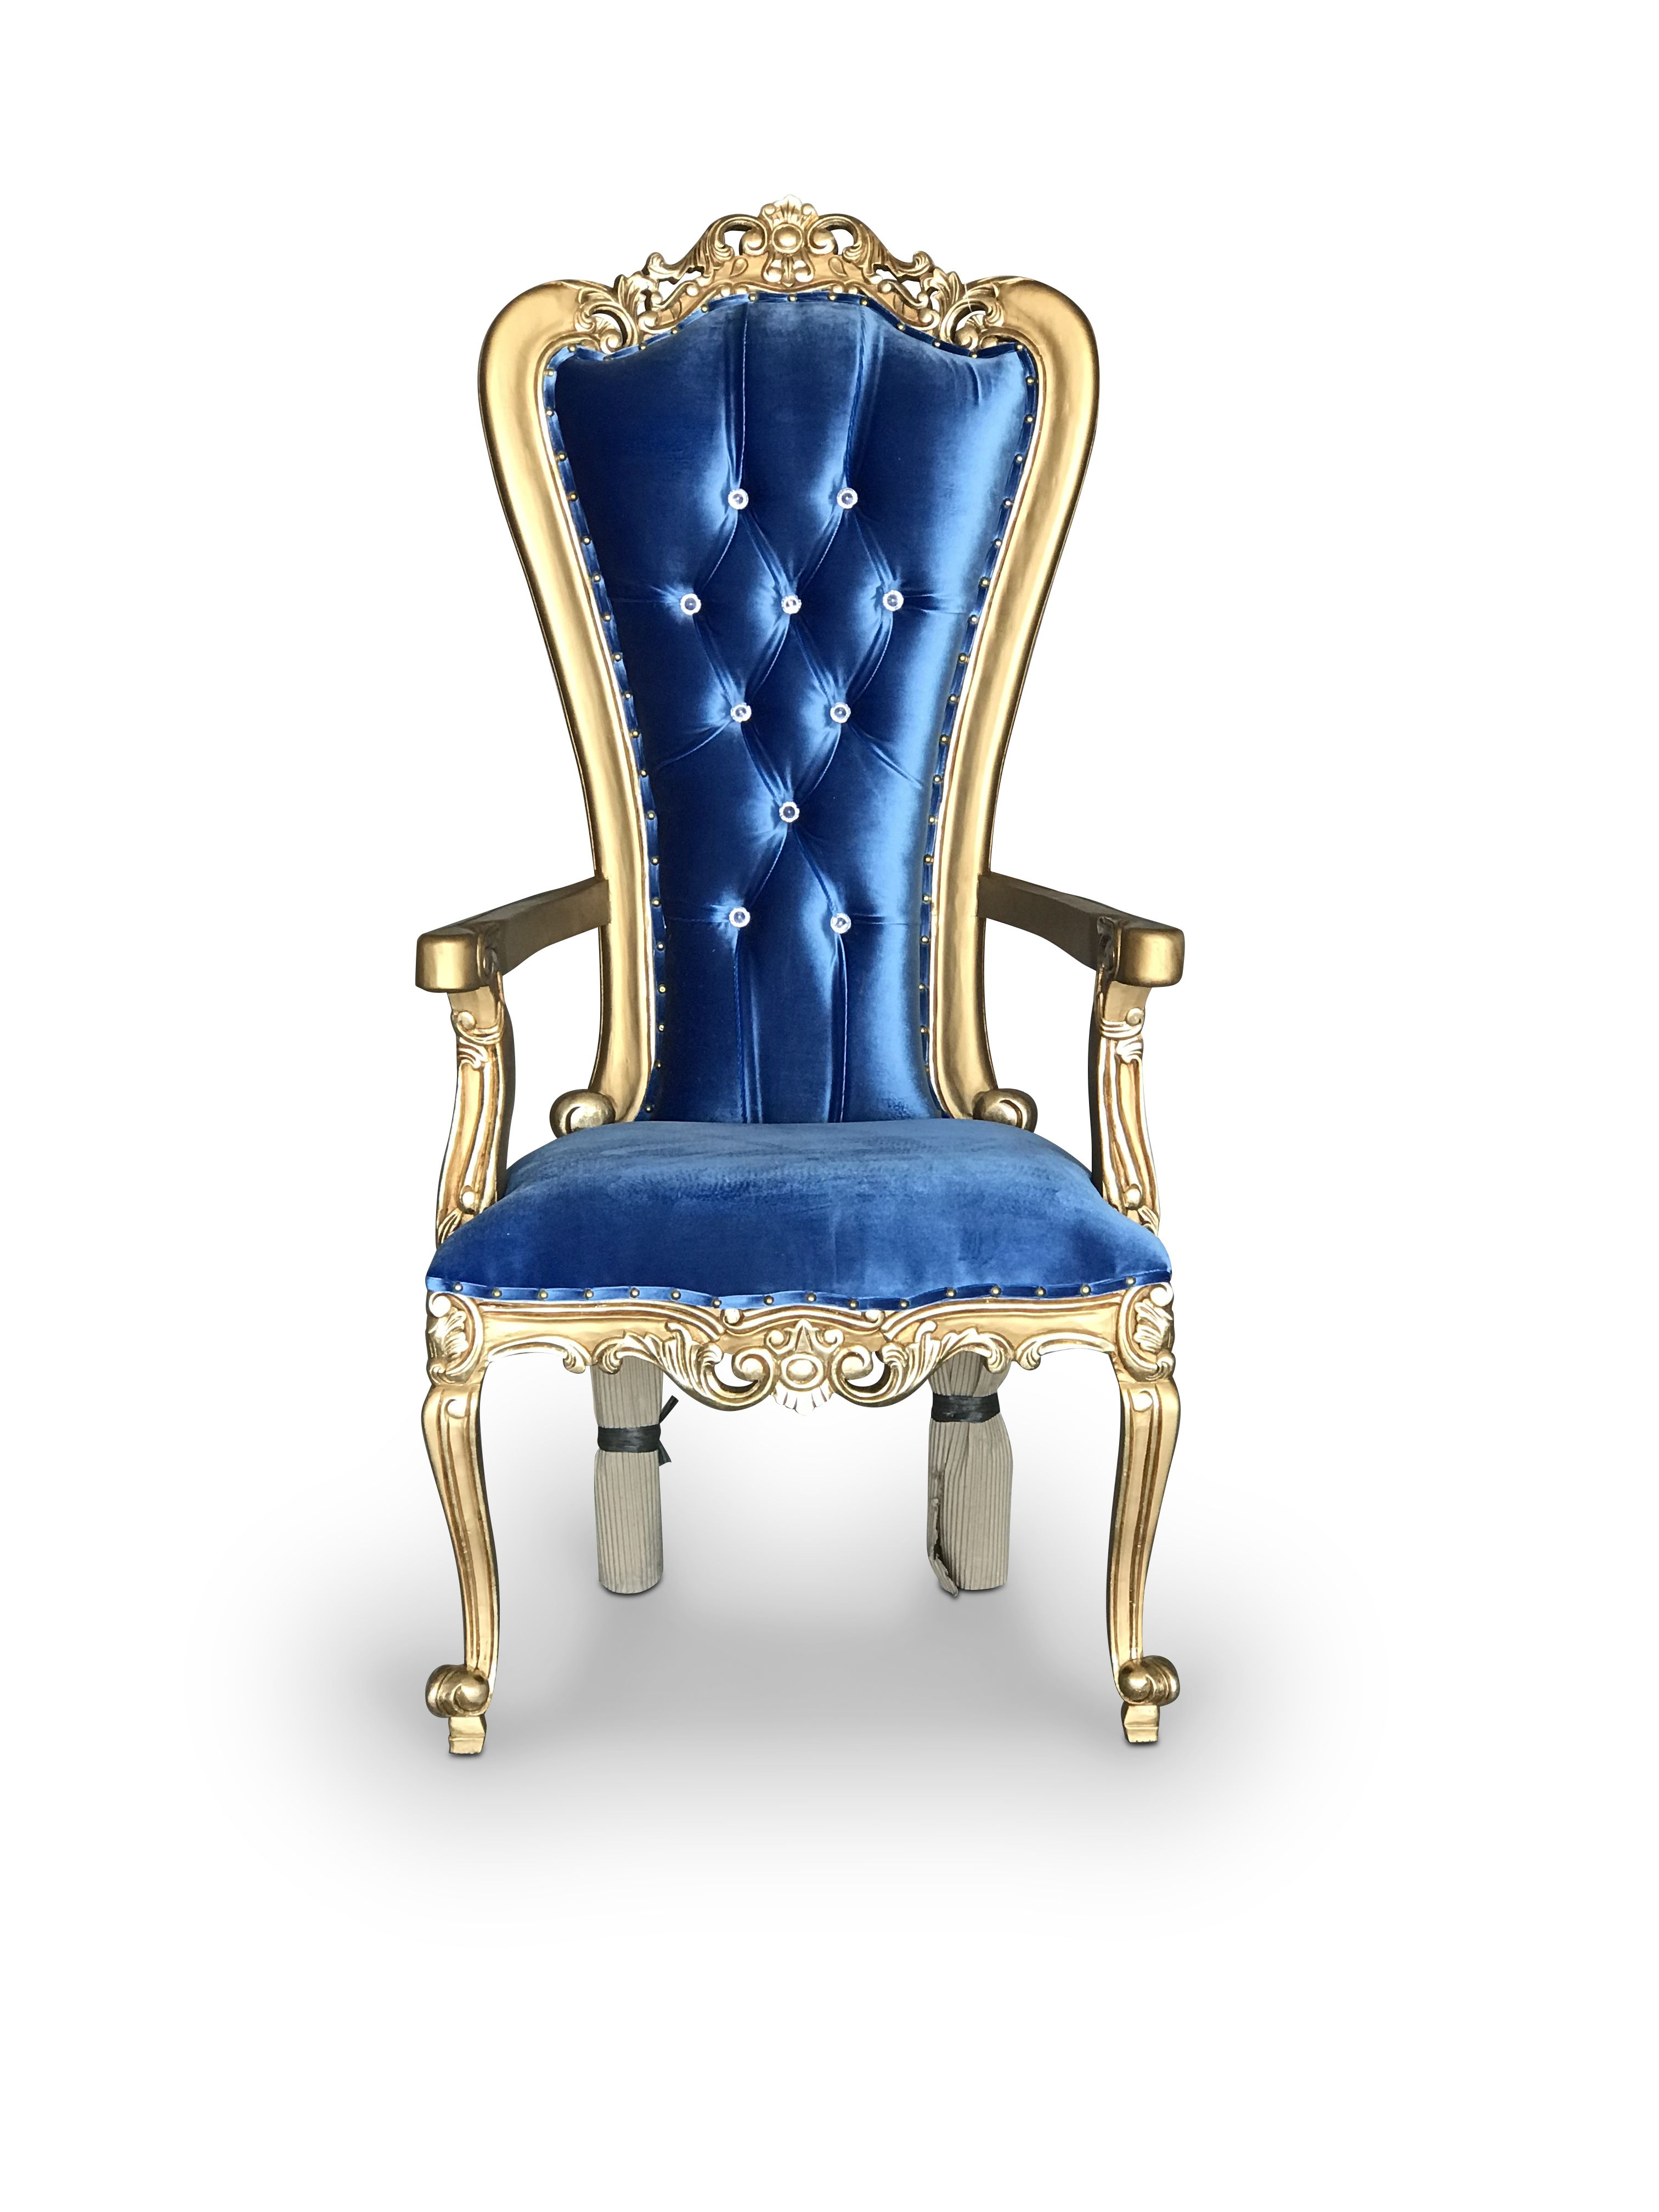 Chiseled Perfections Royal King Queen Throne Chairs Baroque Inspired Furniture Throne Chair Wood Carving Furniture King Queen